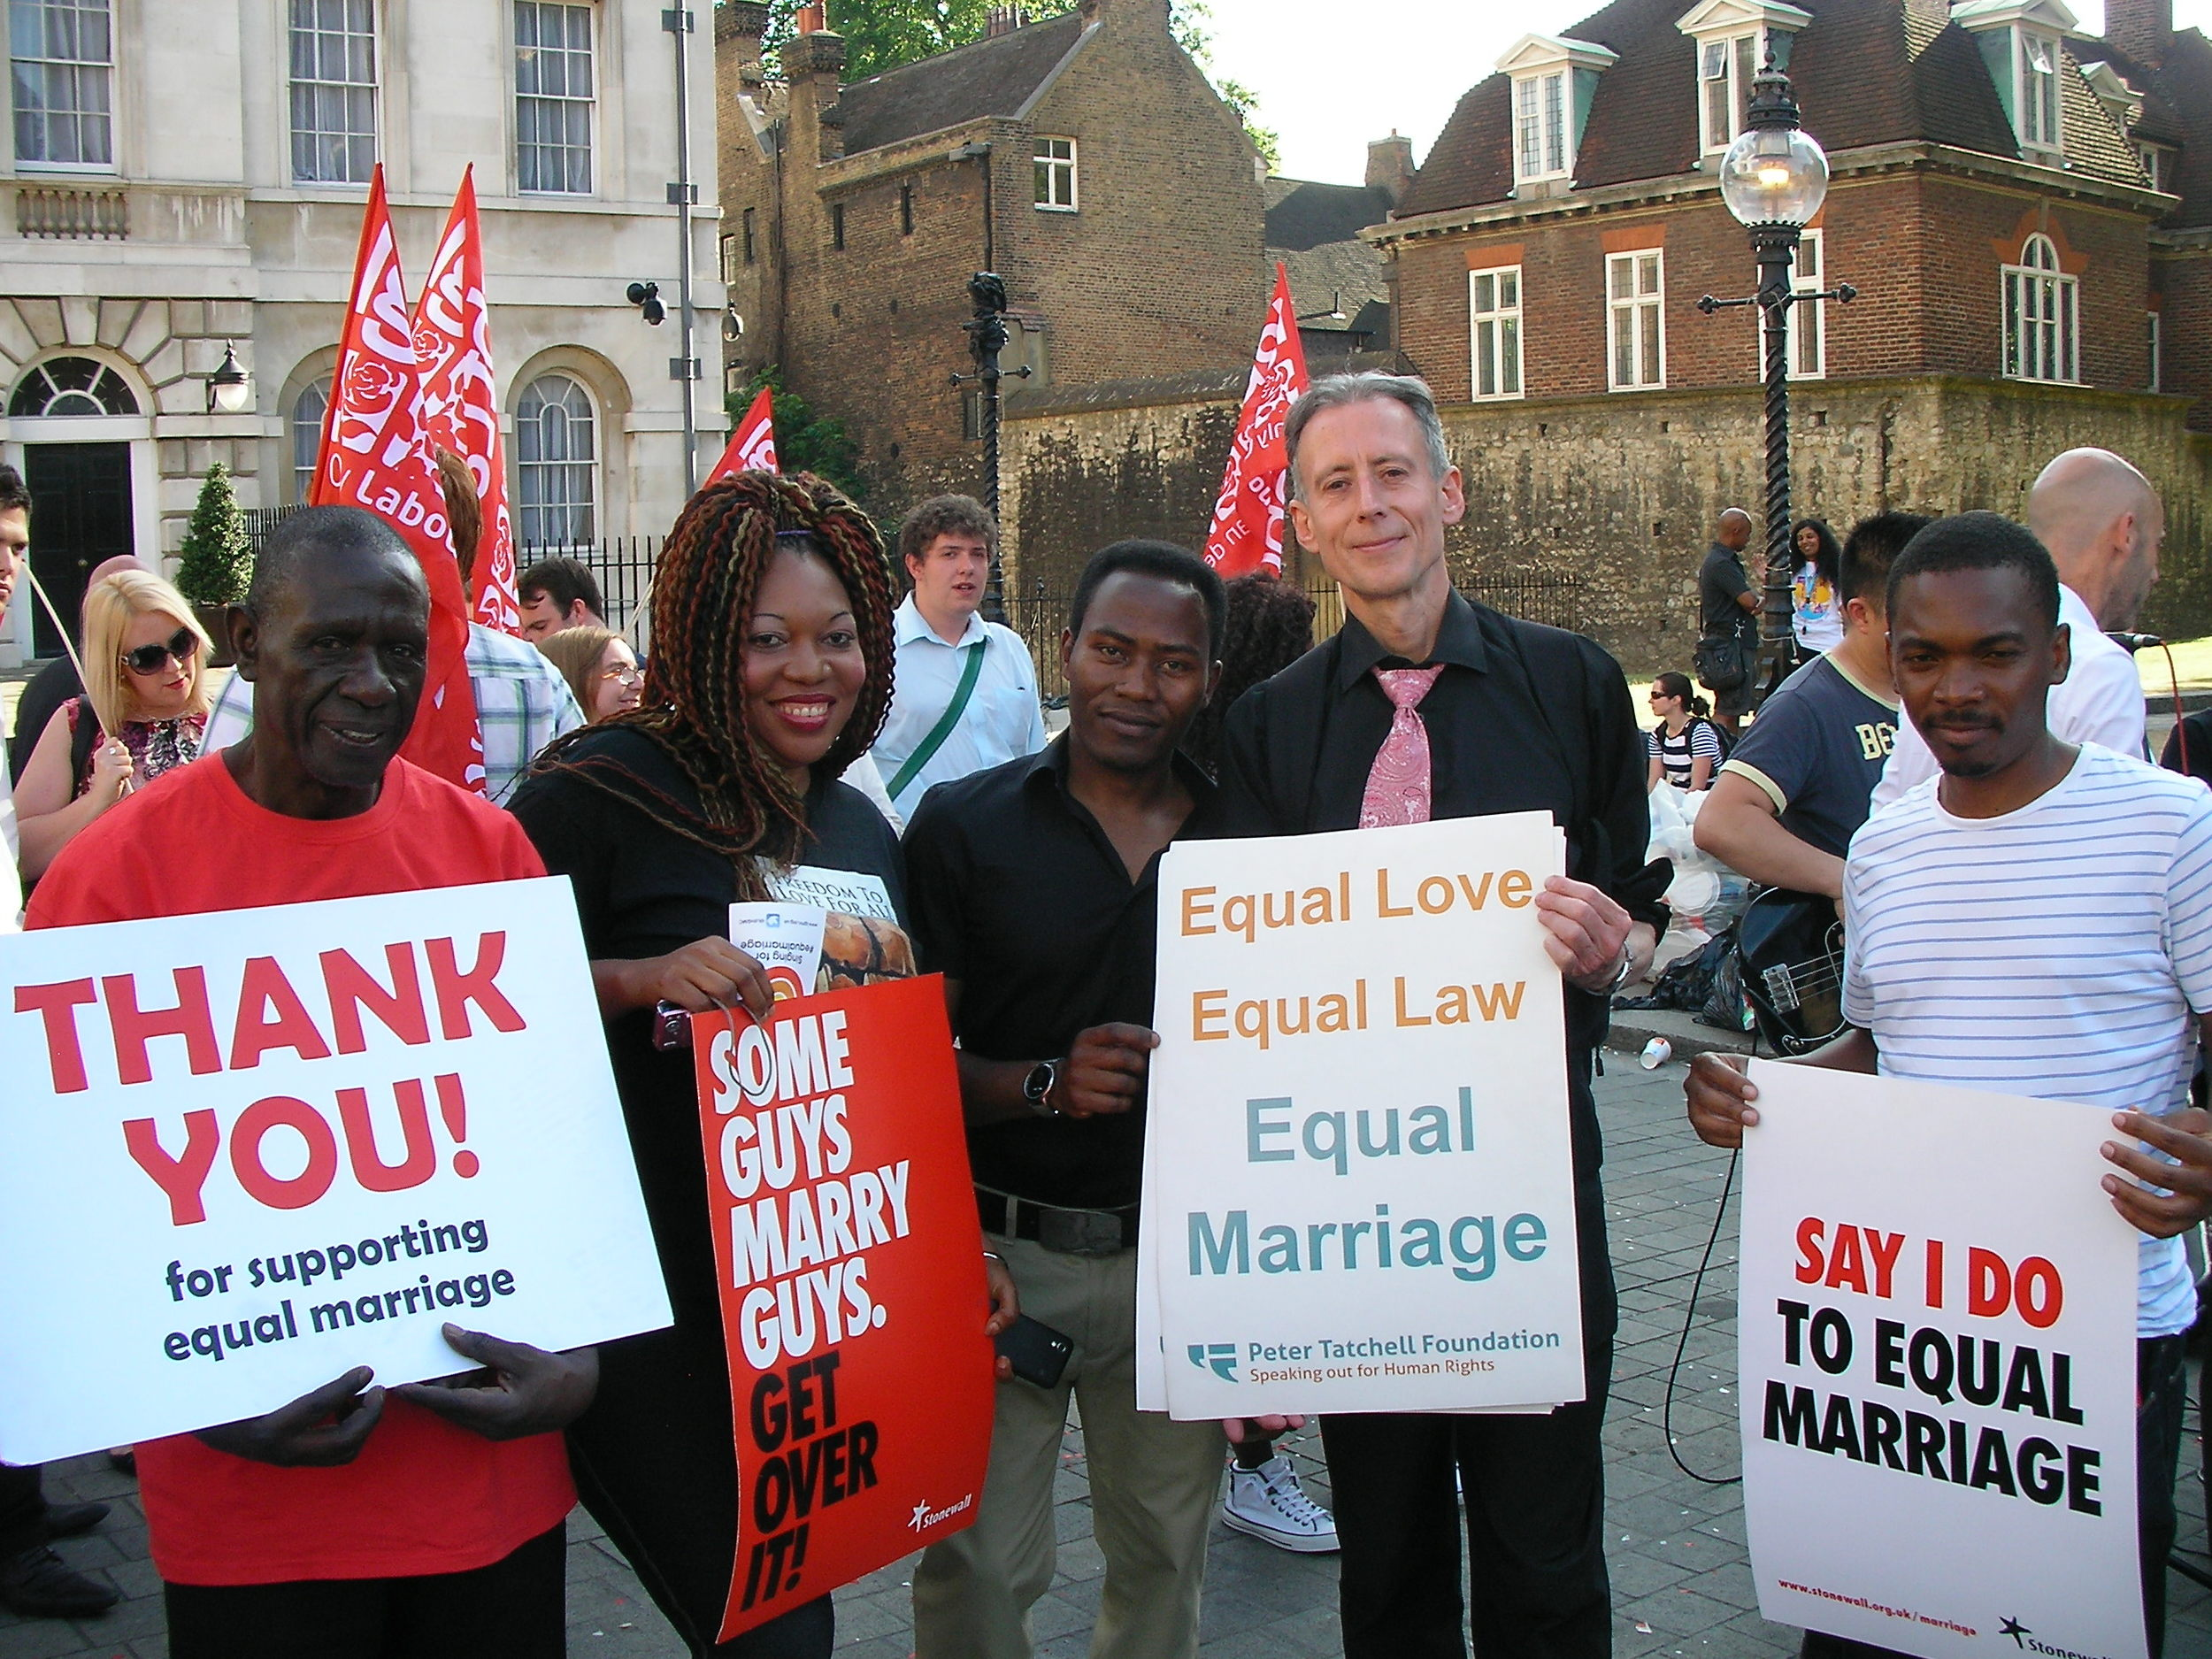 Same-sex marriage - Lords rally,4 June 2013